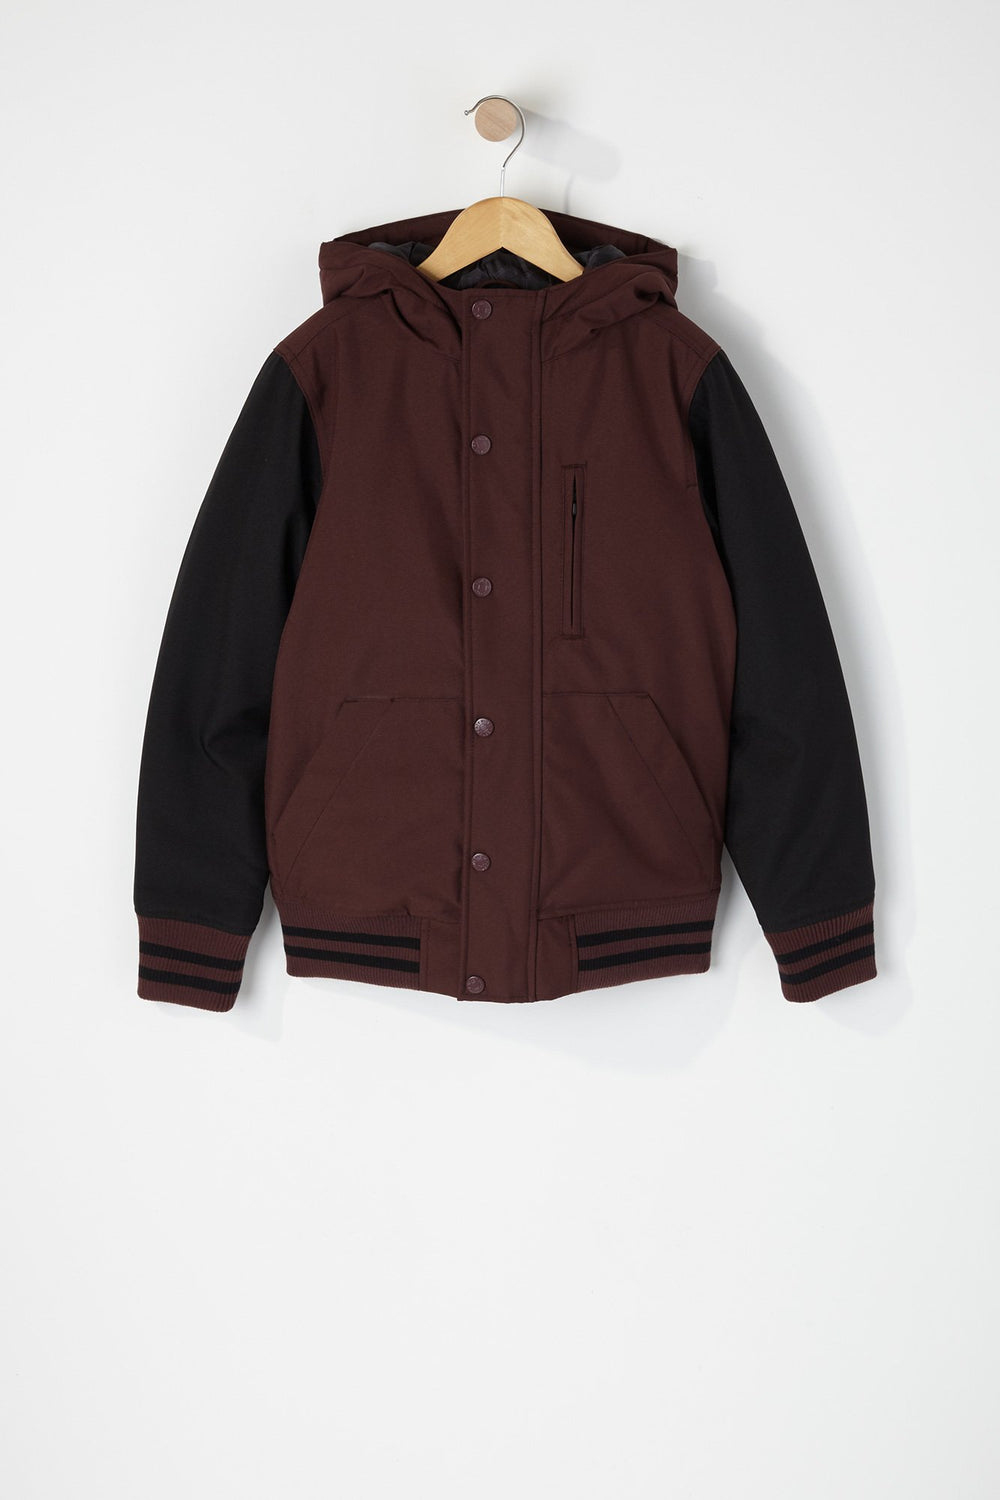 West49 Boys Colour Block Varsity Jacket Burgundy